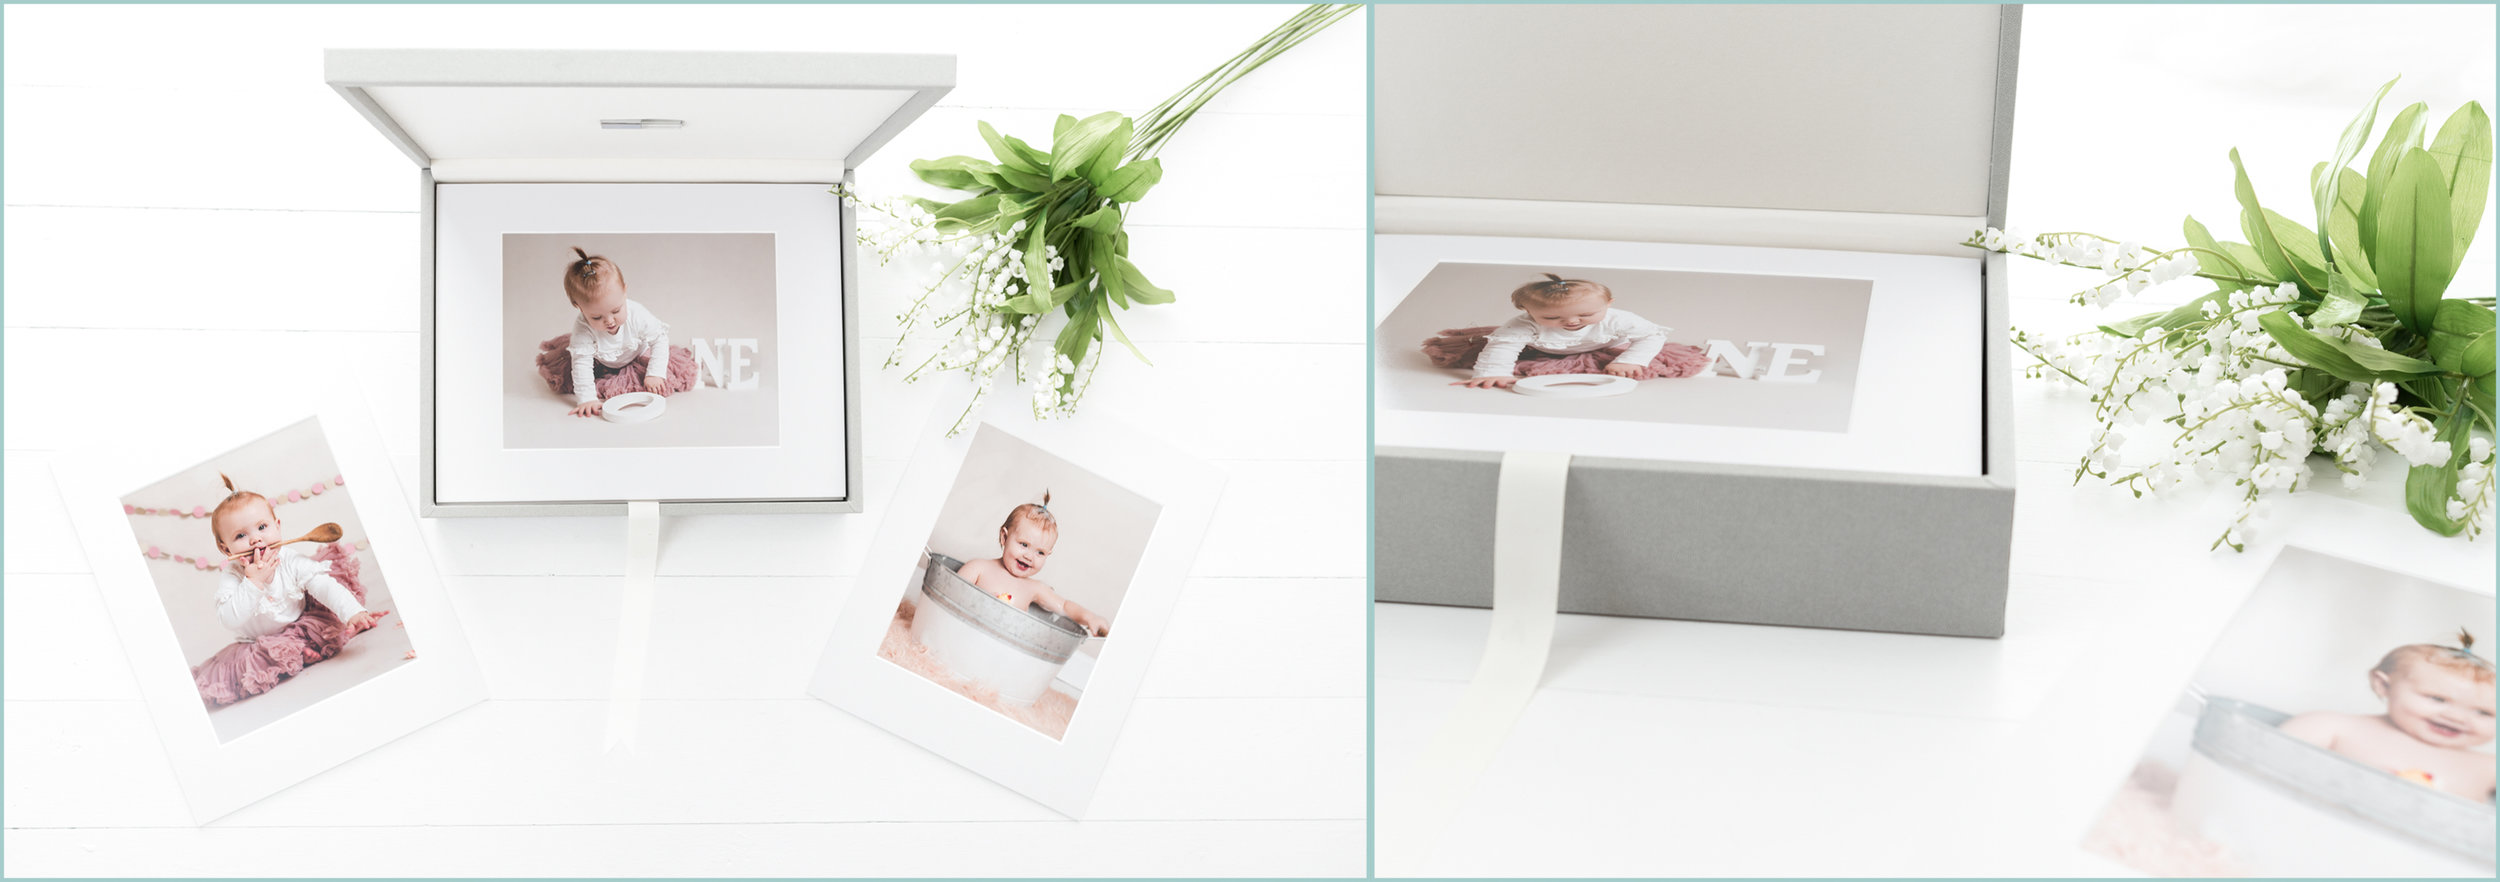 Products available with all Family, children's. cake smash photography sessions - luxury folio box